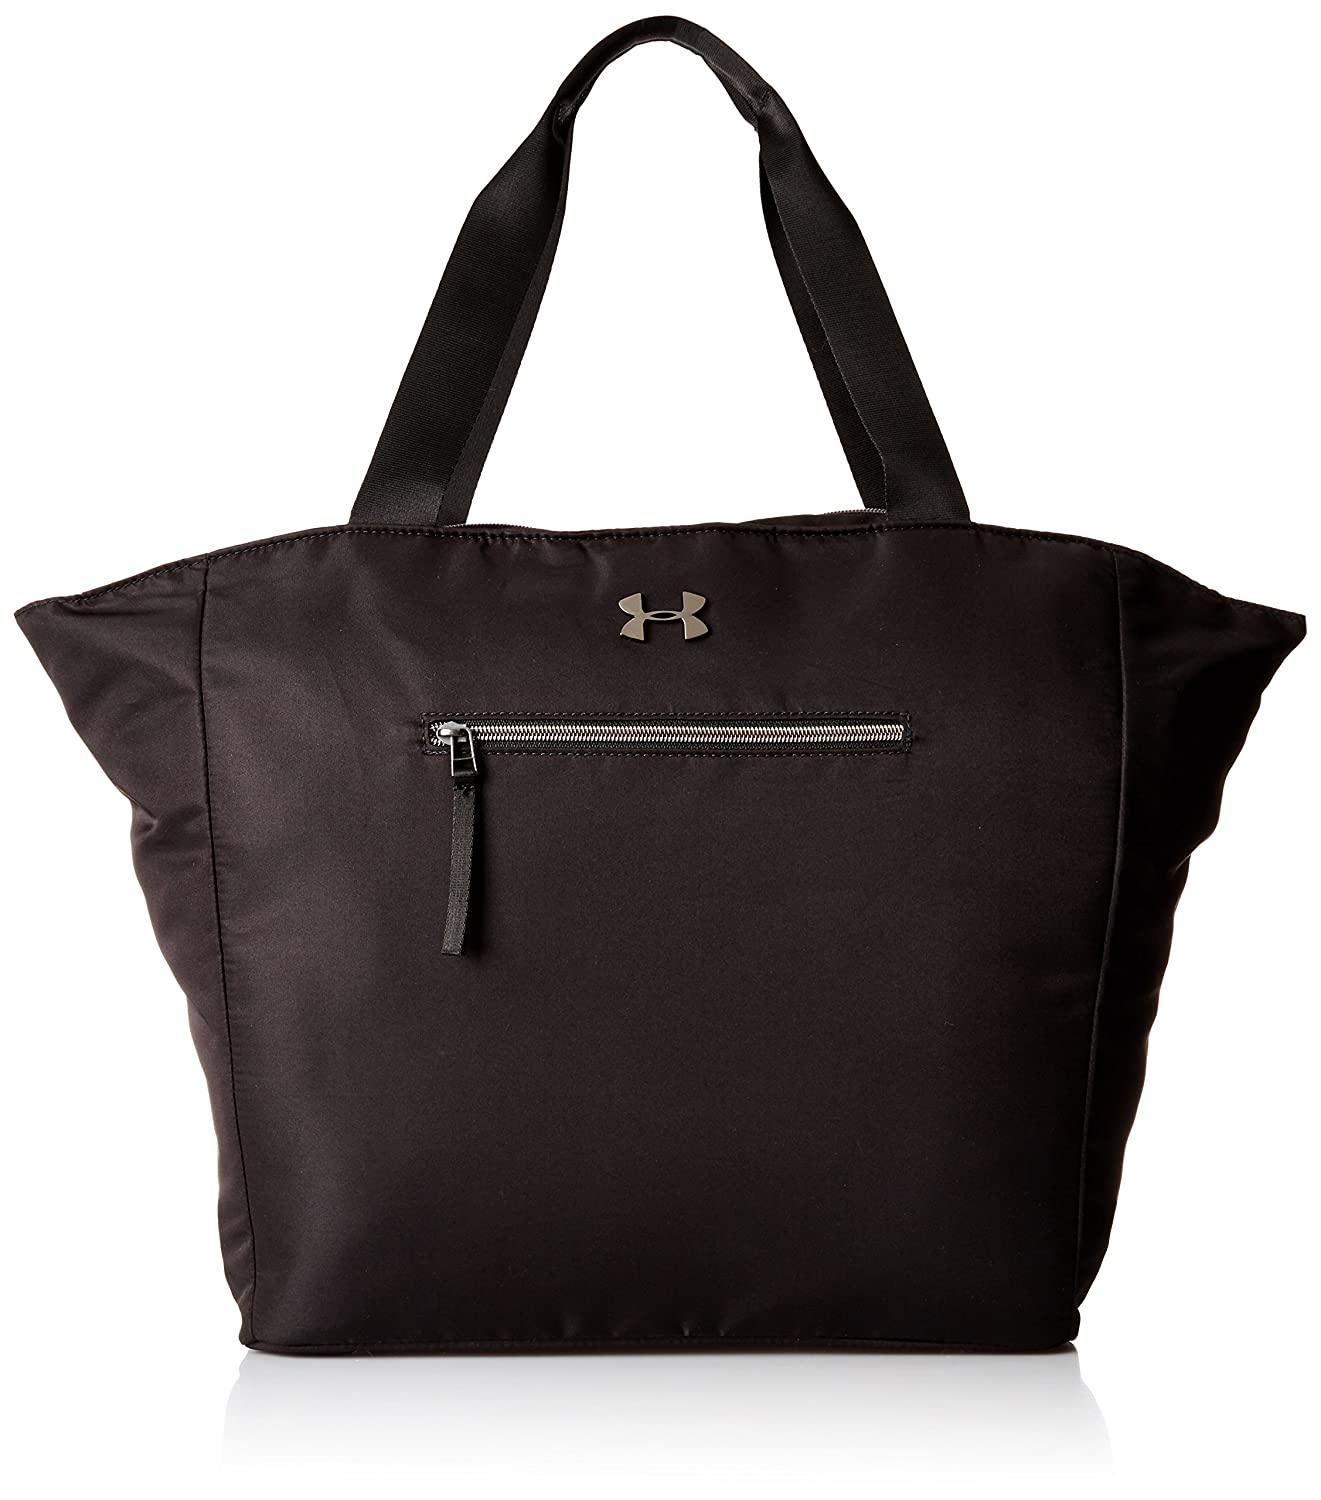 13ad68e0bb6 Under Armour Women s To and From Tote Bag, Black, One Size  Amazon.in   Shoes   Handbags